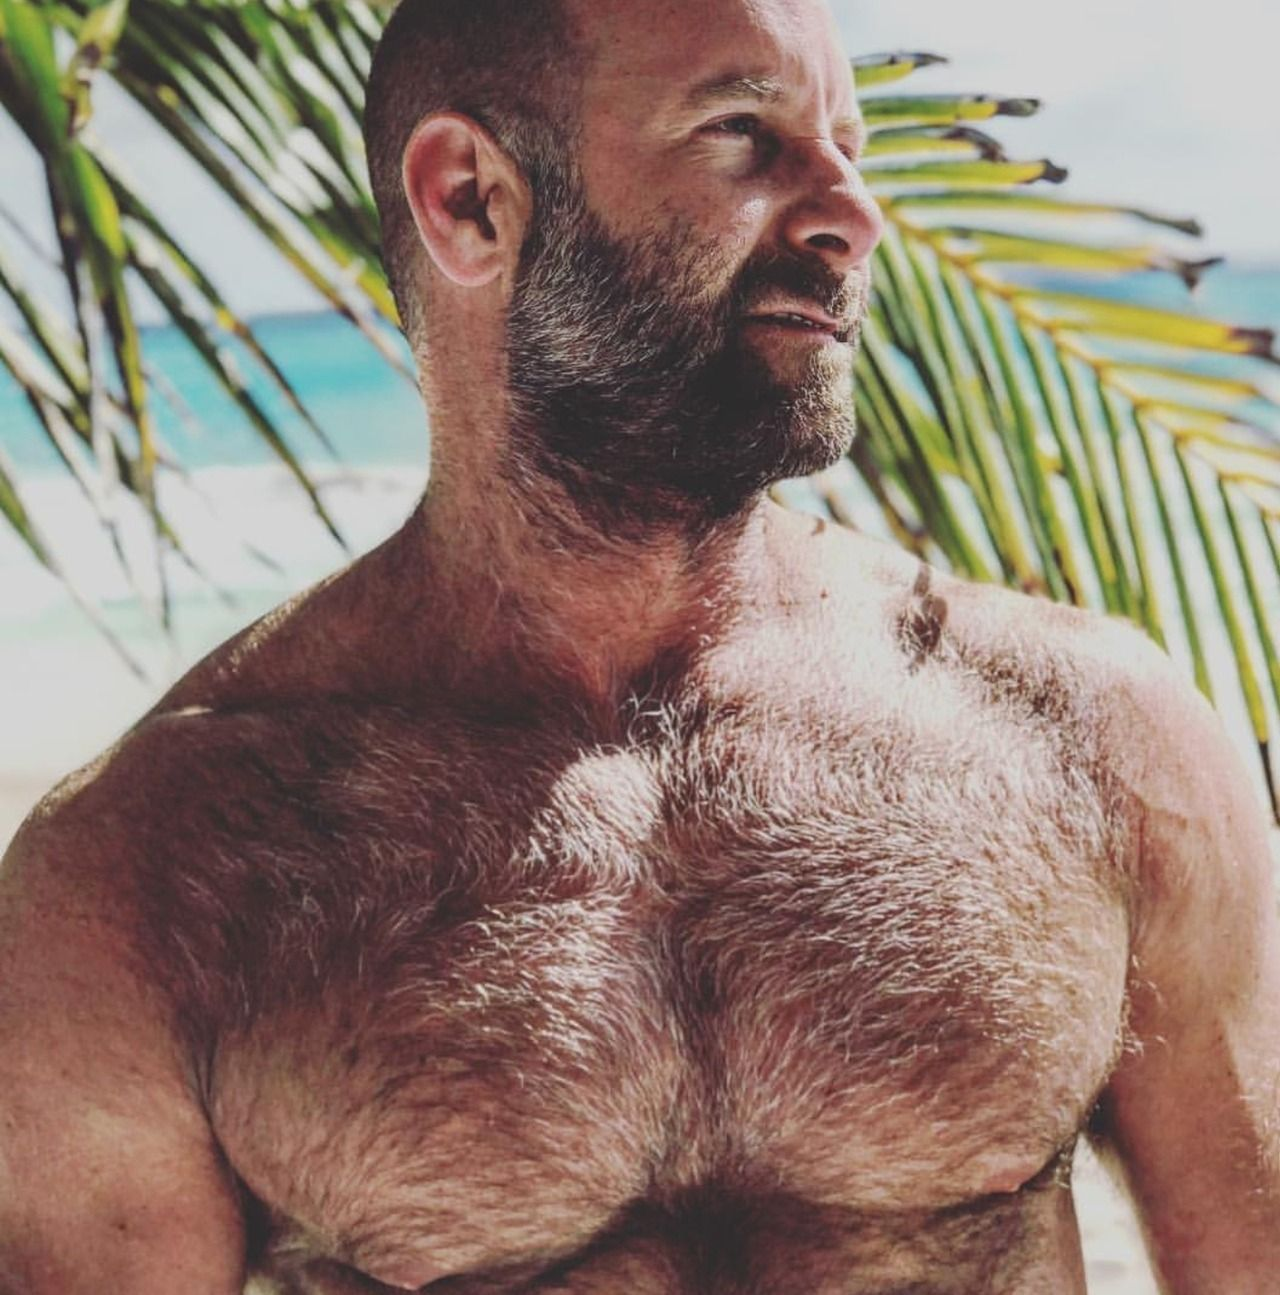 Bear Gay Maduros beach bod